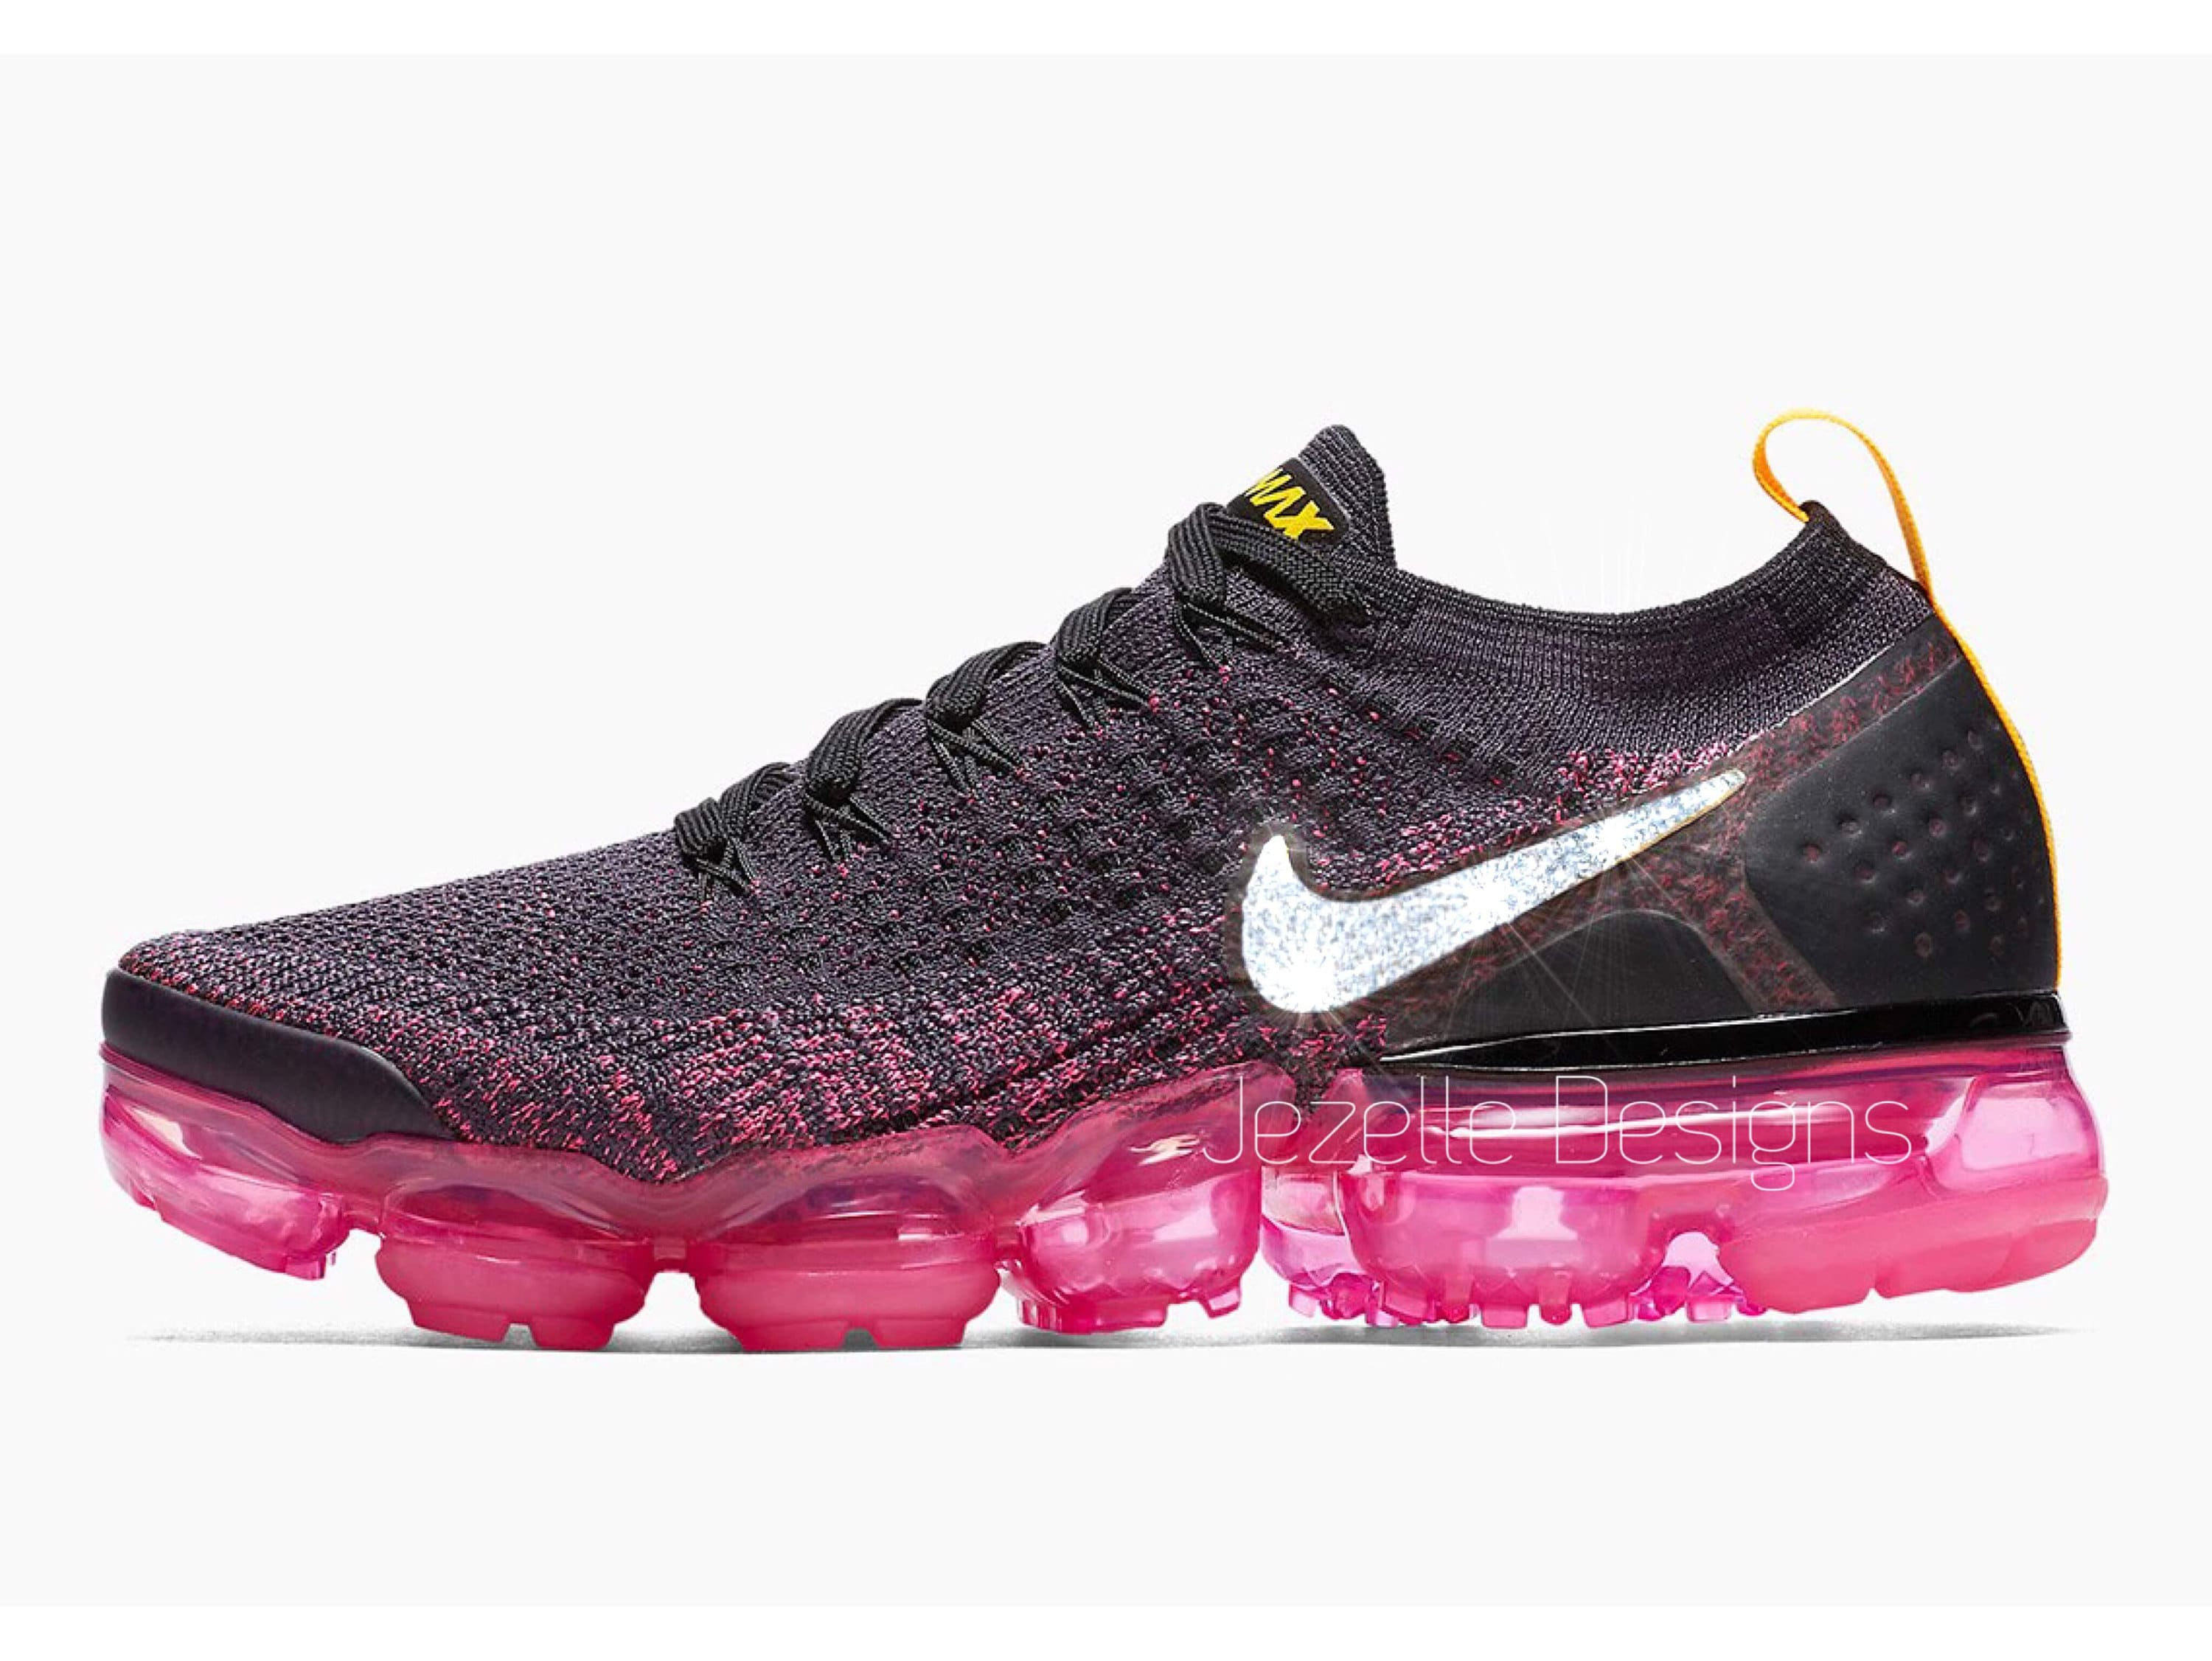 new arrival 56dcb 9001e Swarovski Nike Air VaporMax Flyknit 2 Custom Hand Jeweled w/ Swarovski  Crystals, Bling Nike Shoes, Gifts for Her, Nike Vapormax, Swarovski